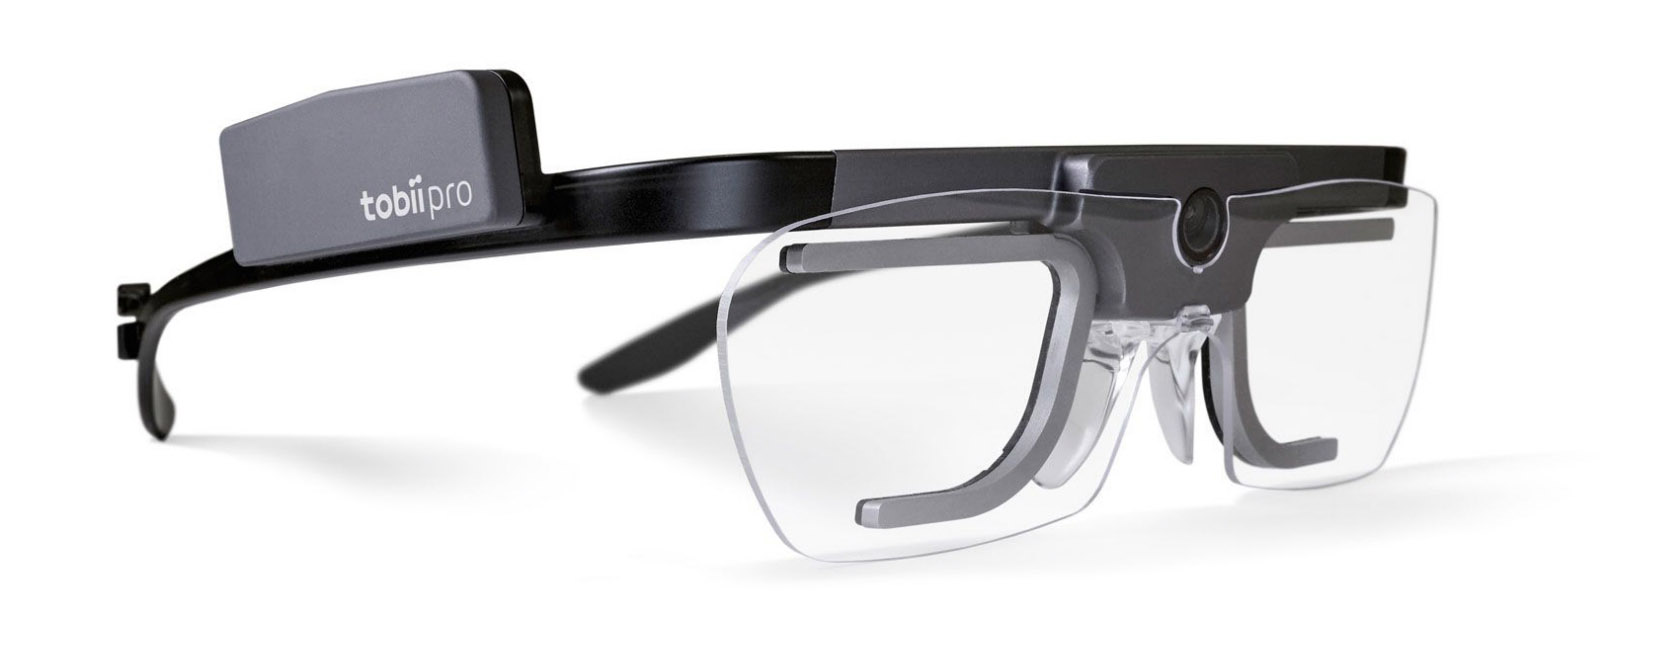 Tobii Pro Glasses 2 Eye Tracker